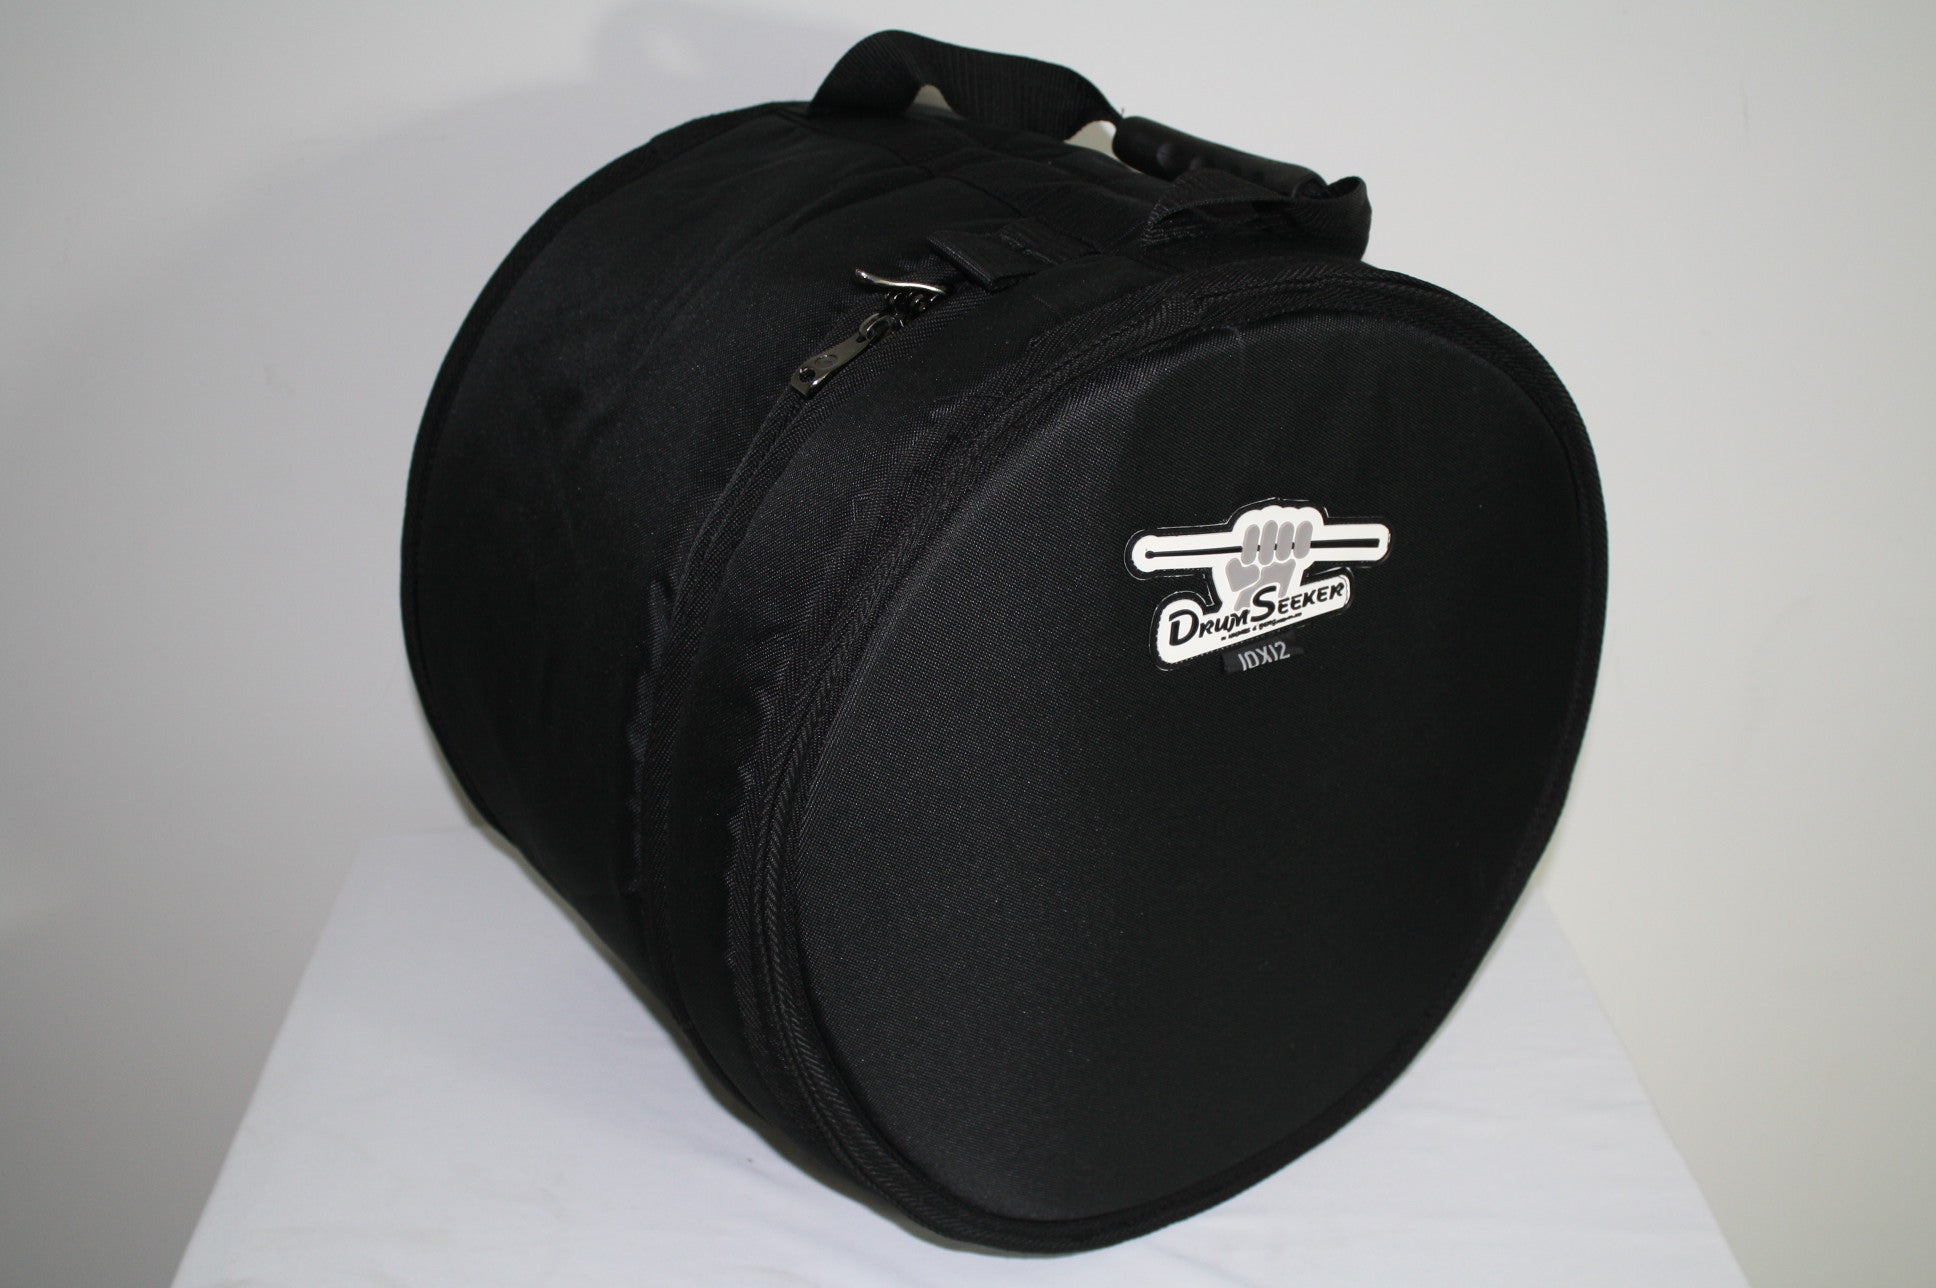 H&B  Drum Seeker 16 x 18 Inches Floor Tom Drum Bag